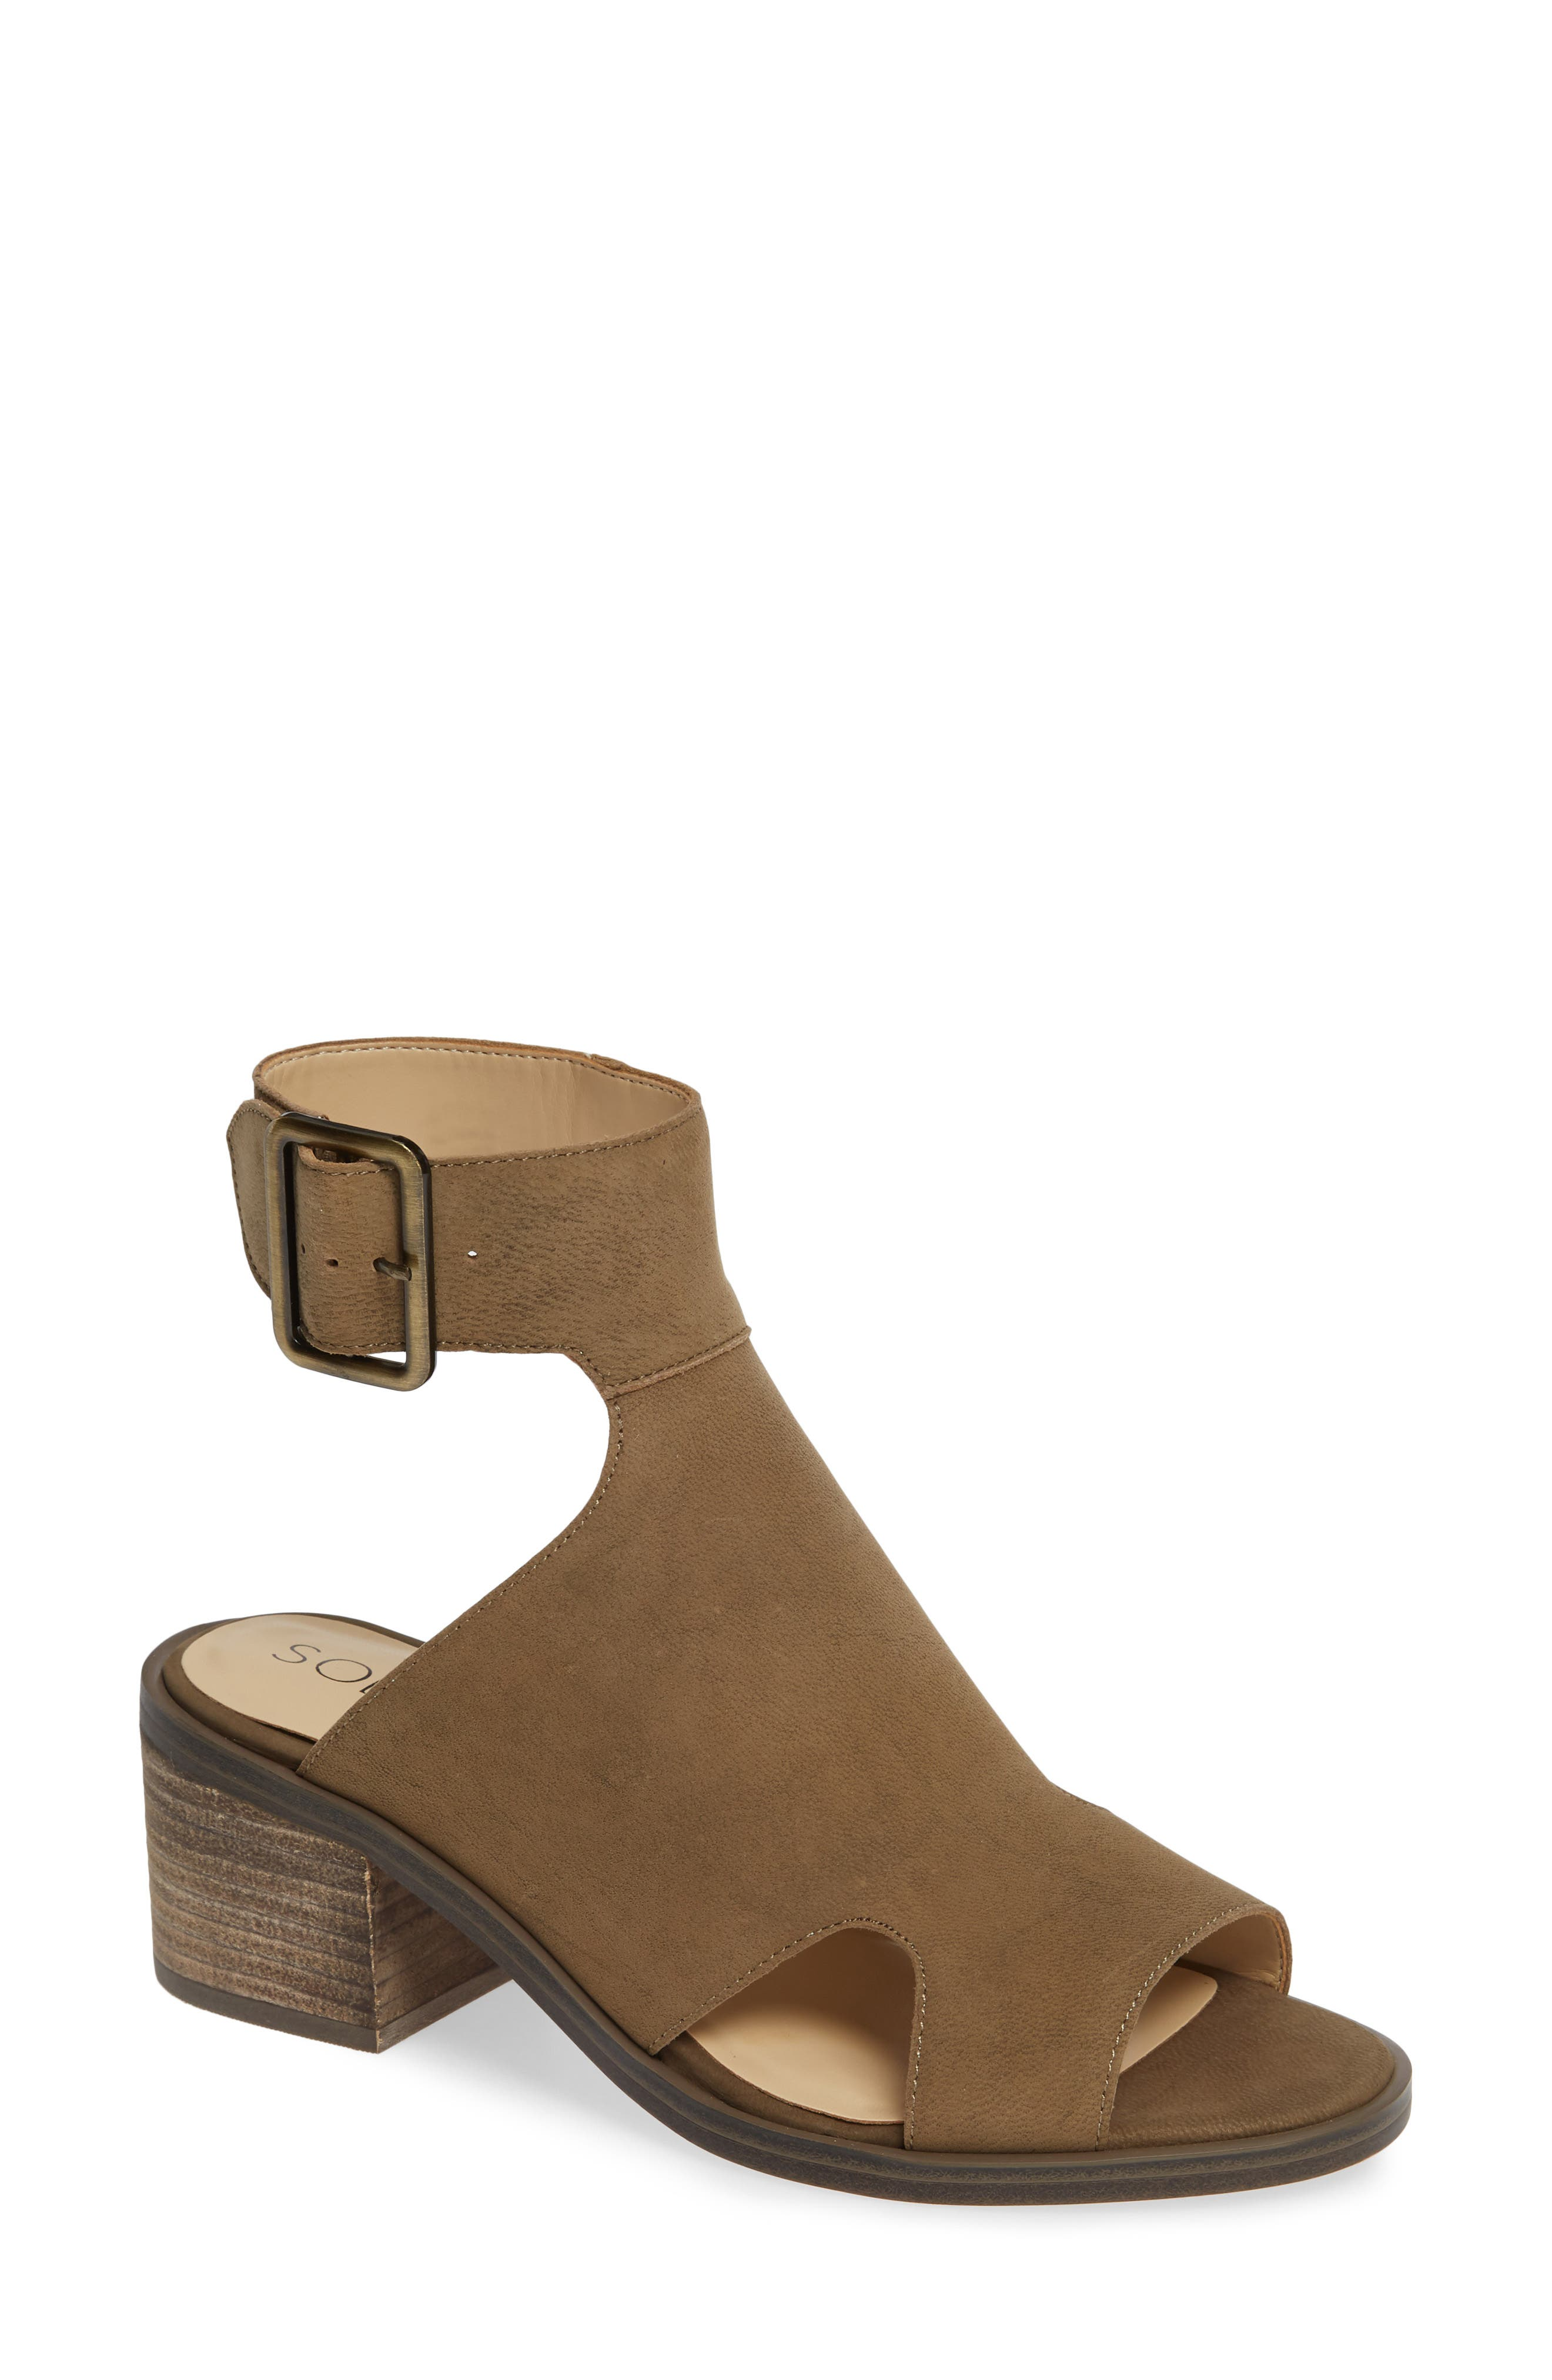 Tally Ankle Cuff Sandal,                         Main,                         color, 343